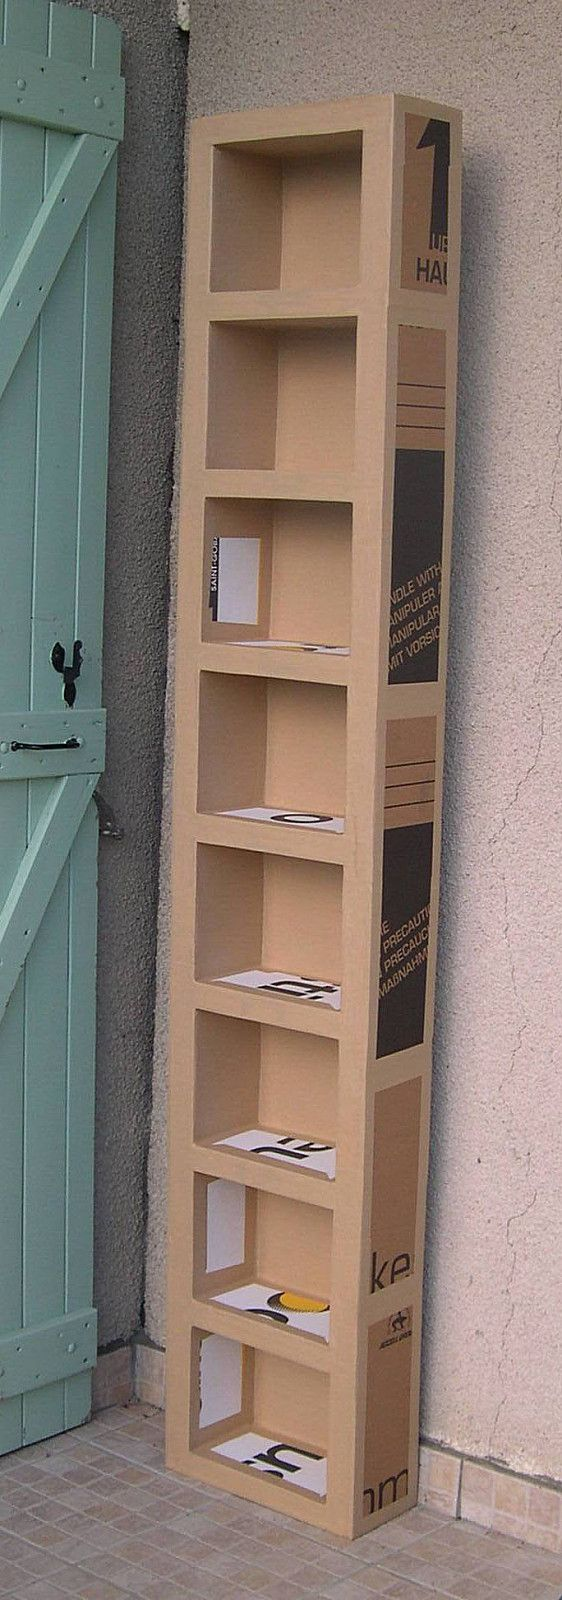 tutoriel pour fabriquer des meubles en carton meuble carton pinterest meuble en carton. Black Bedroom Furniture Sets. Home Design Ideas